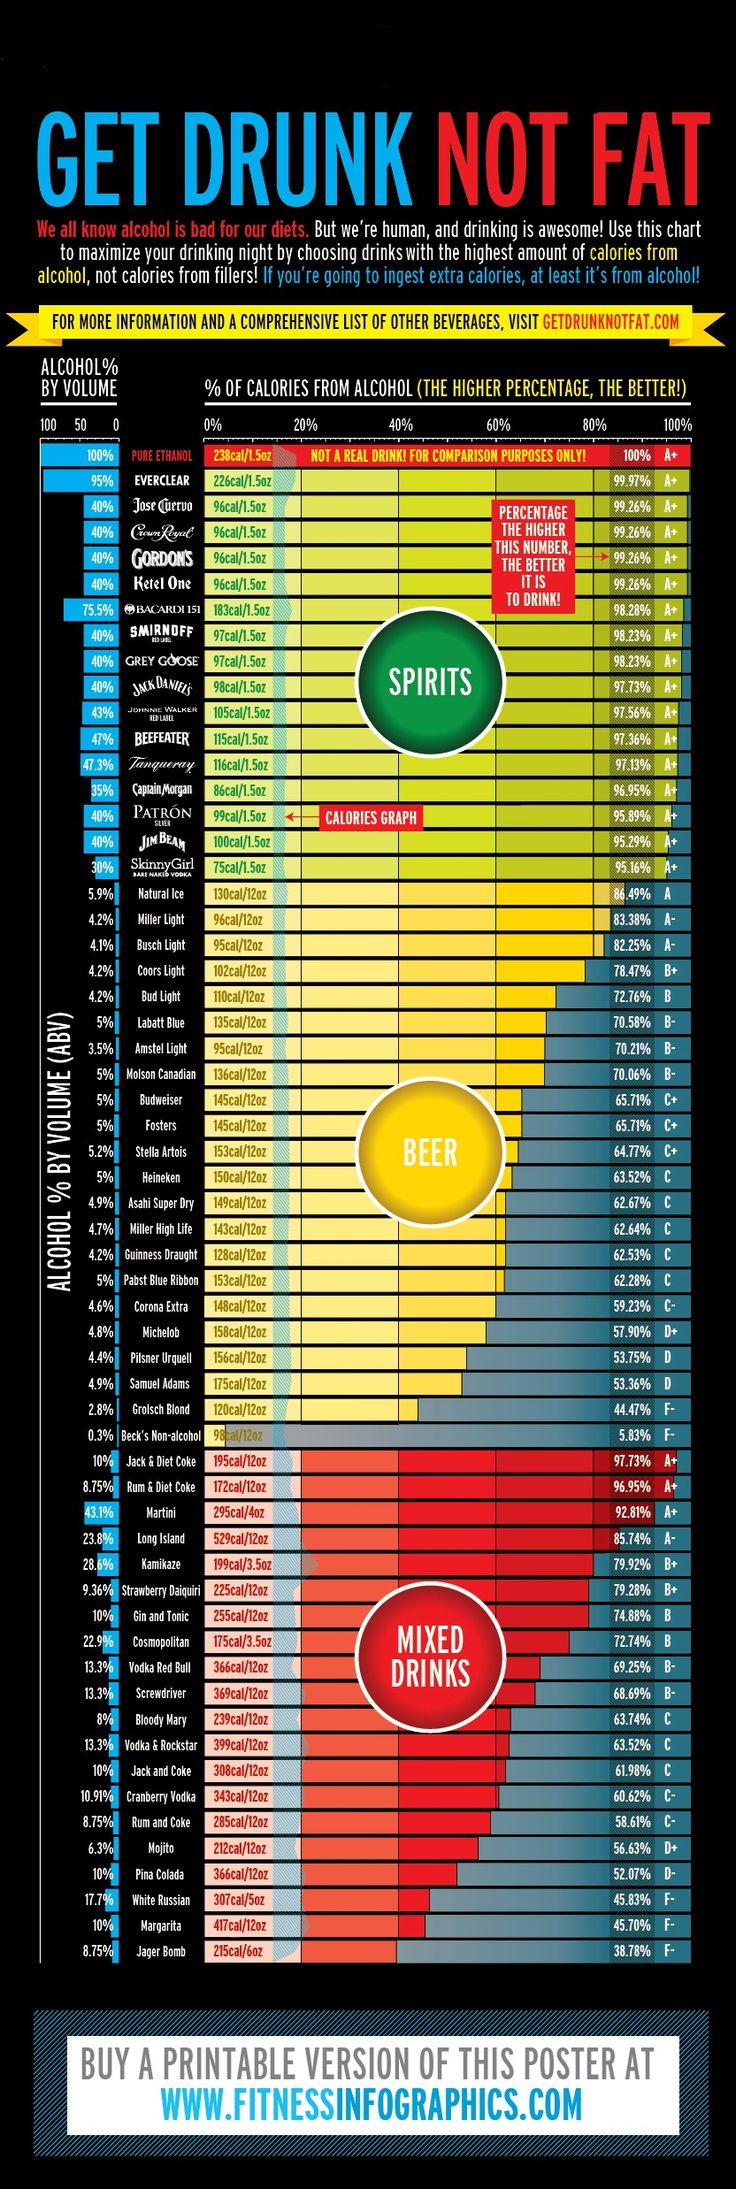 chart telling what alcoholic beverages have how many calories.